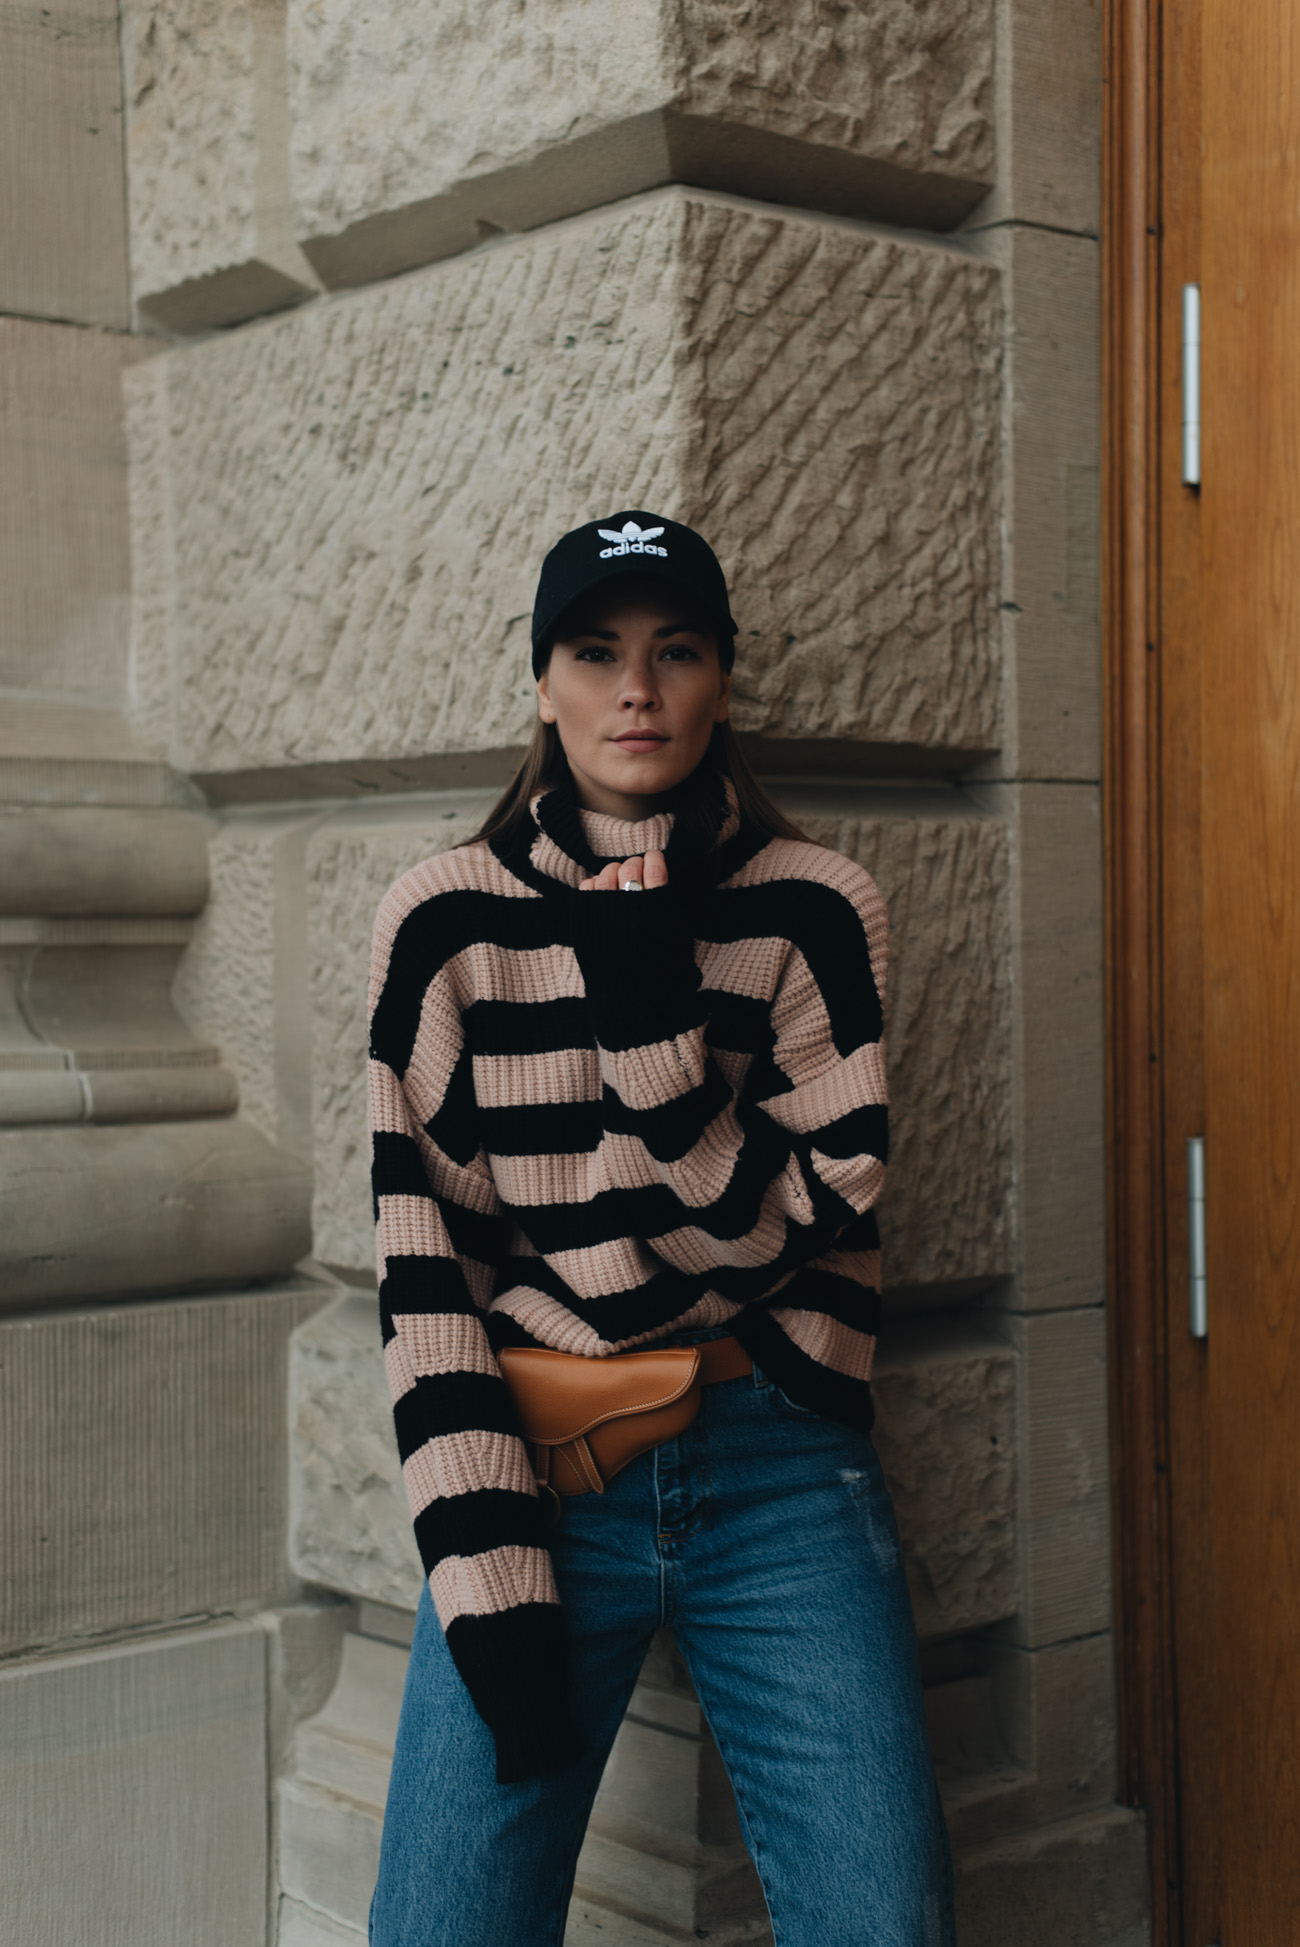 Adidas-Cap-Mütze-german-fashion-and-lifestyle-blogger-influencer-nina-schwichtenberg-fashiioncarpet